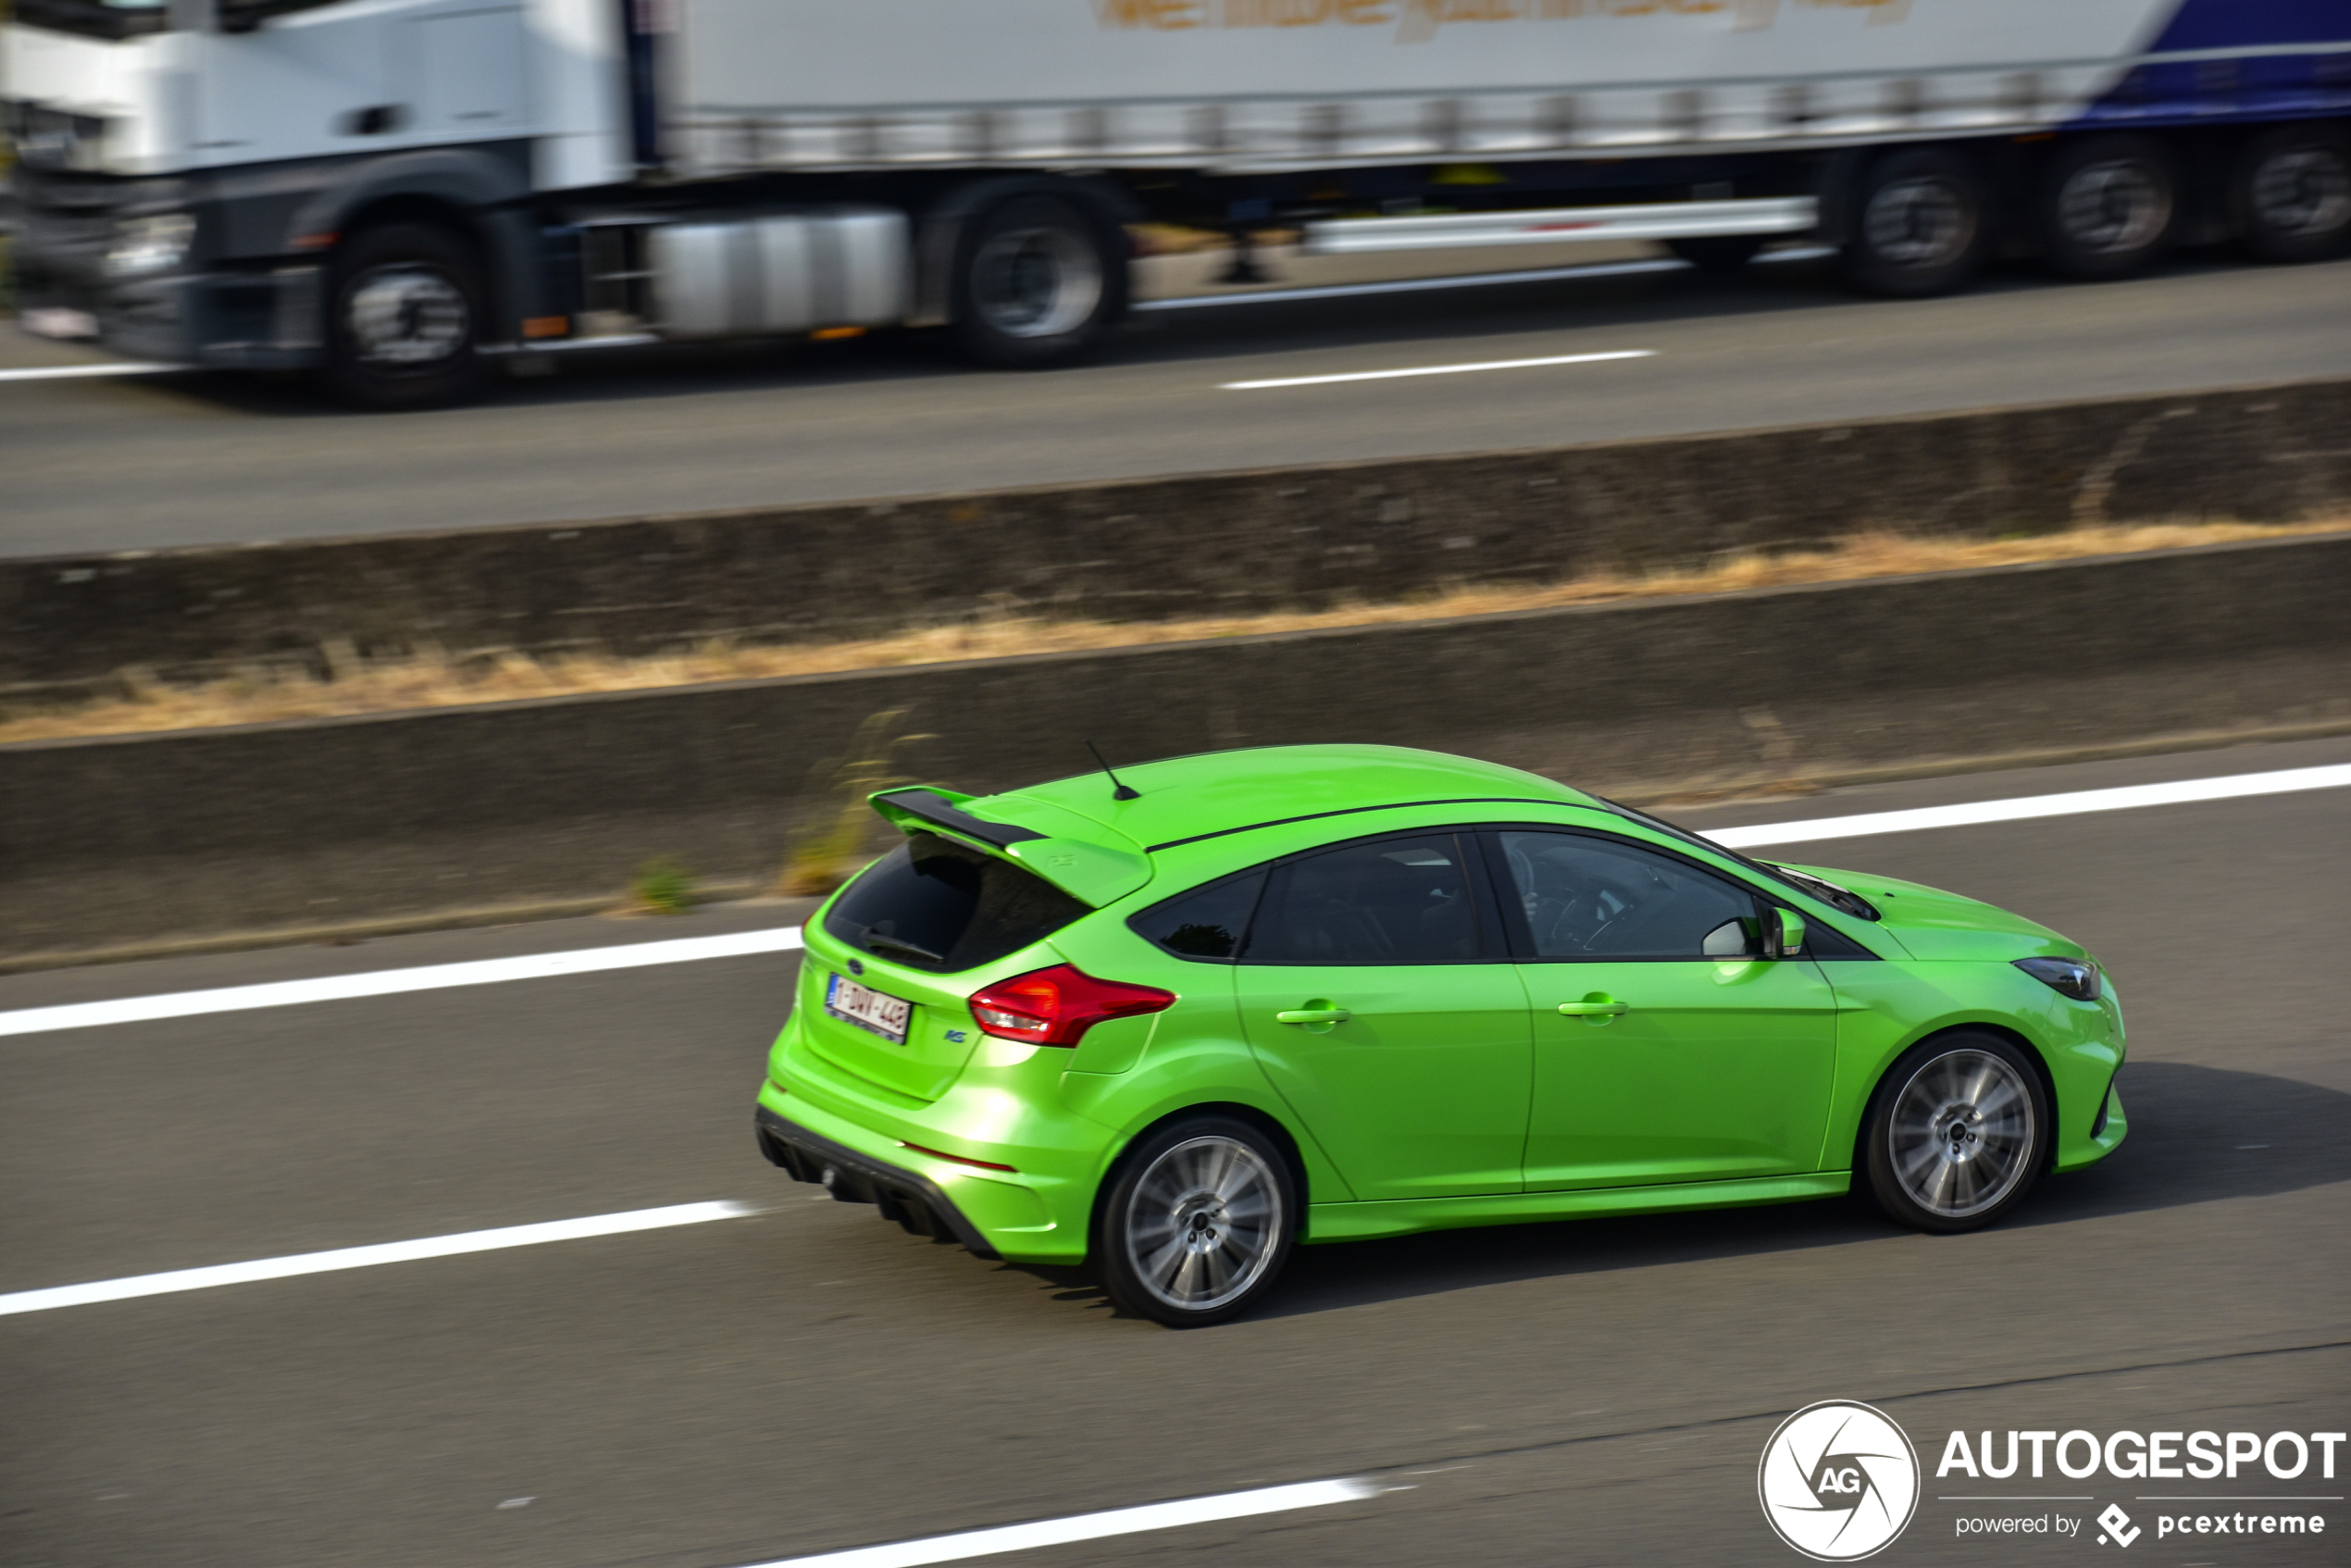 Ford Focus RS is in appeltjesgroen gestoken